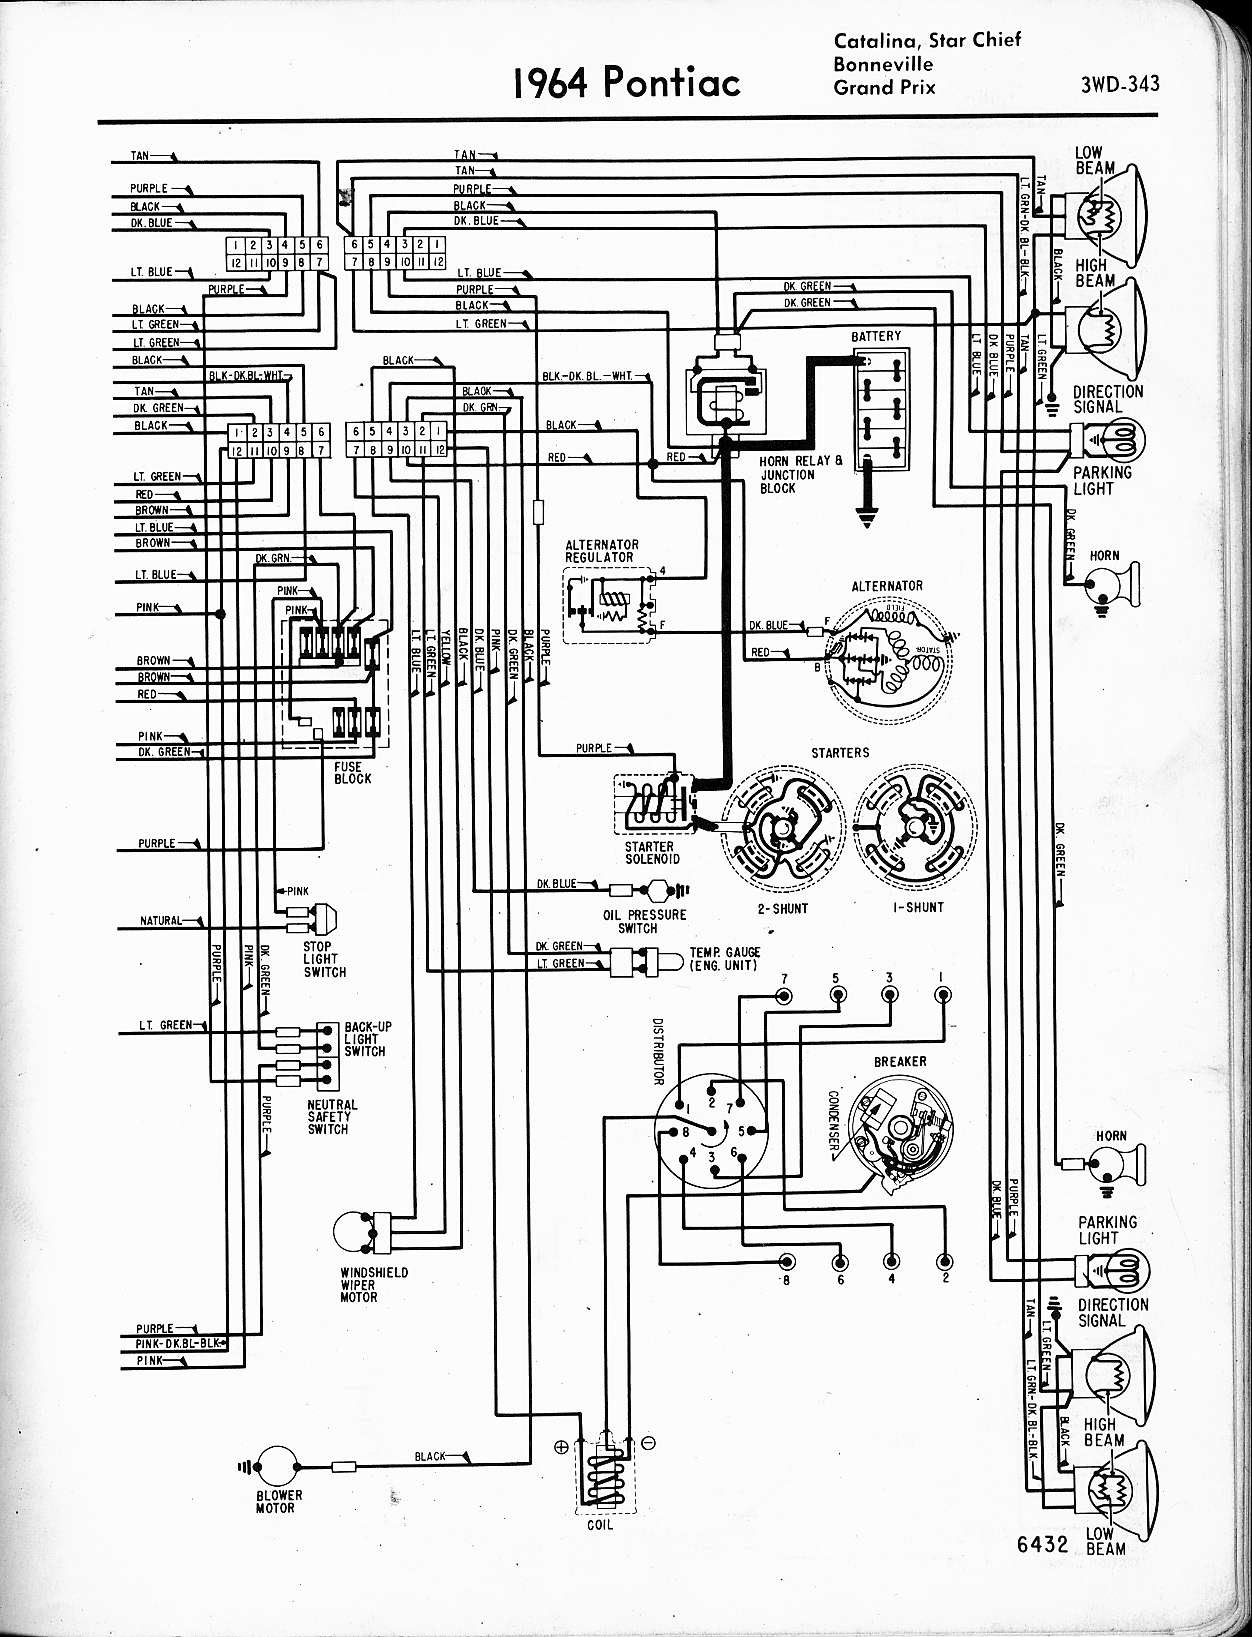 1970 Pontiac Gto Wiring Harness Diagram Wiring Diagram Console1 Console1 Bujinkan It